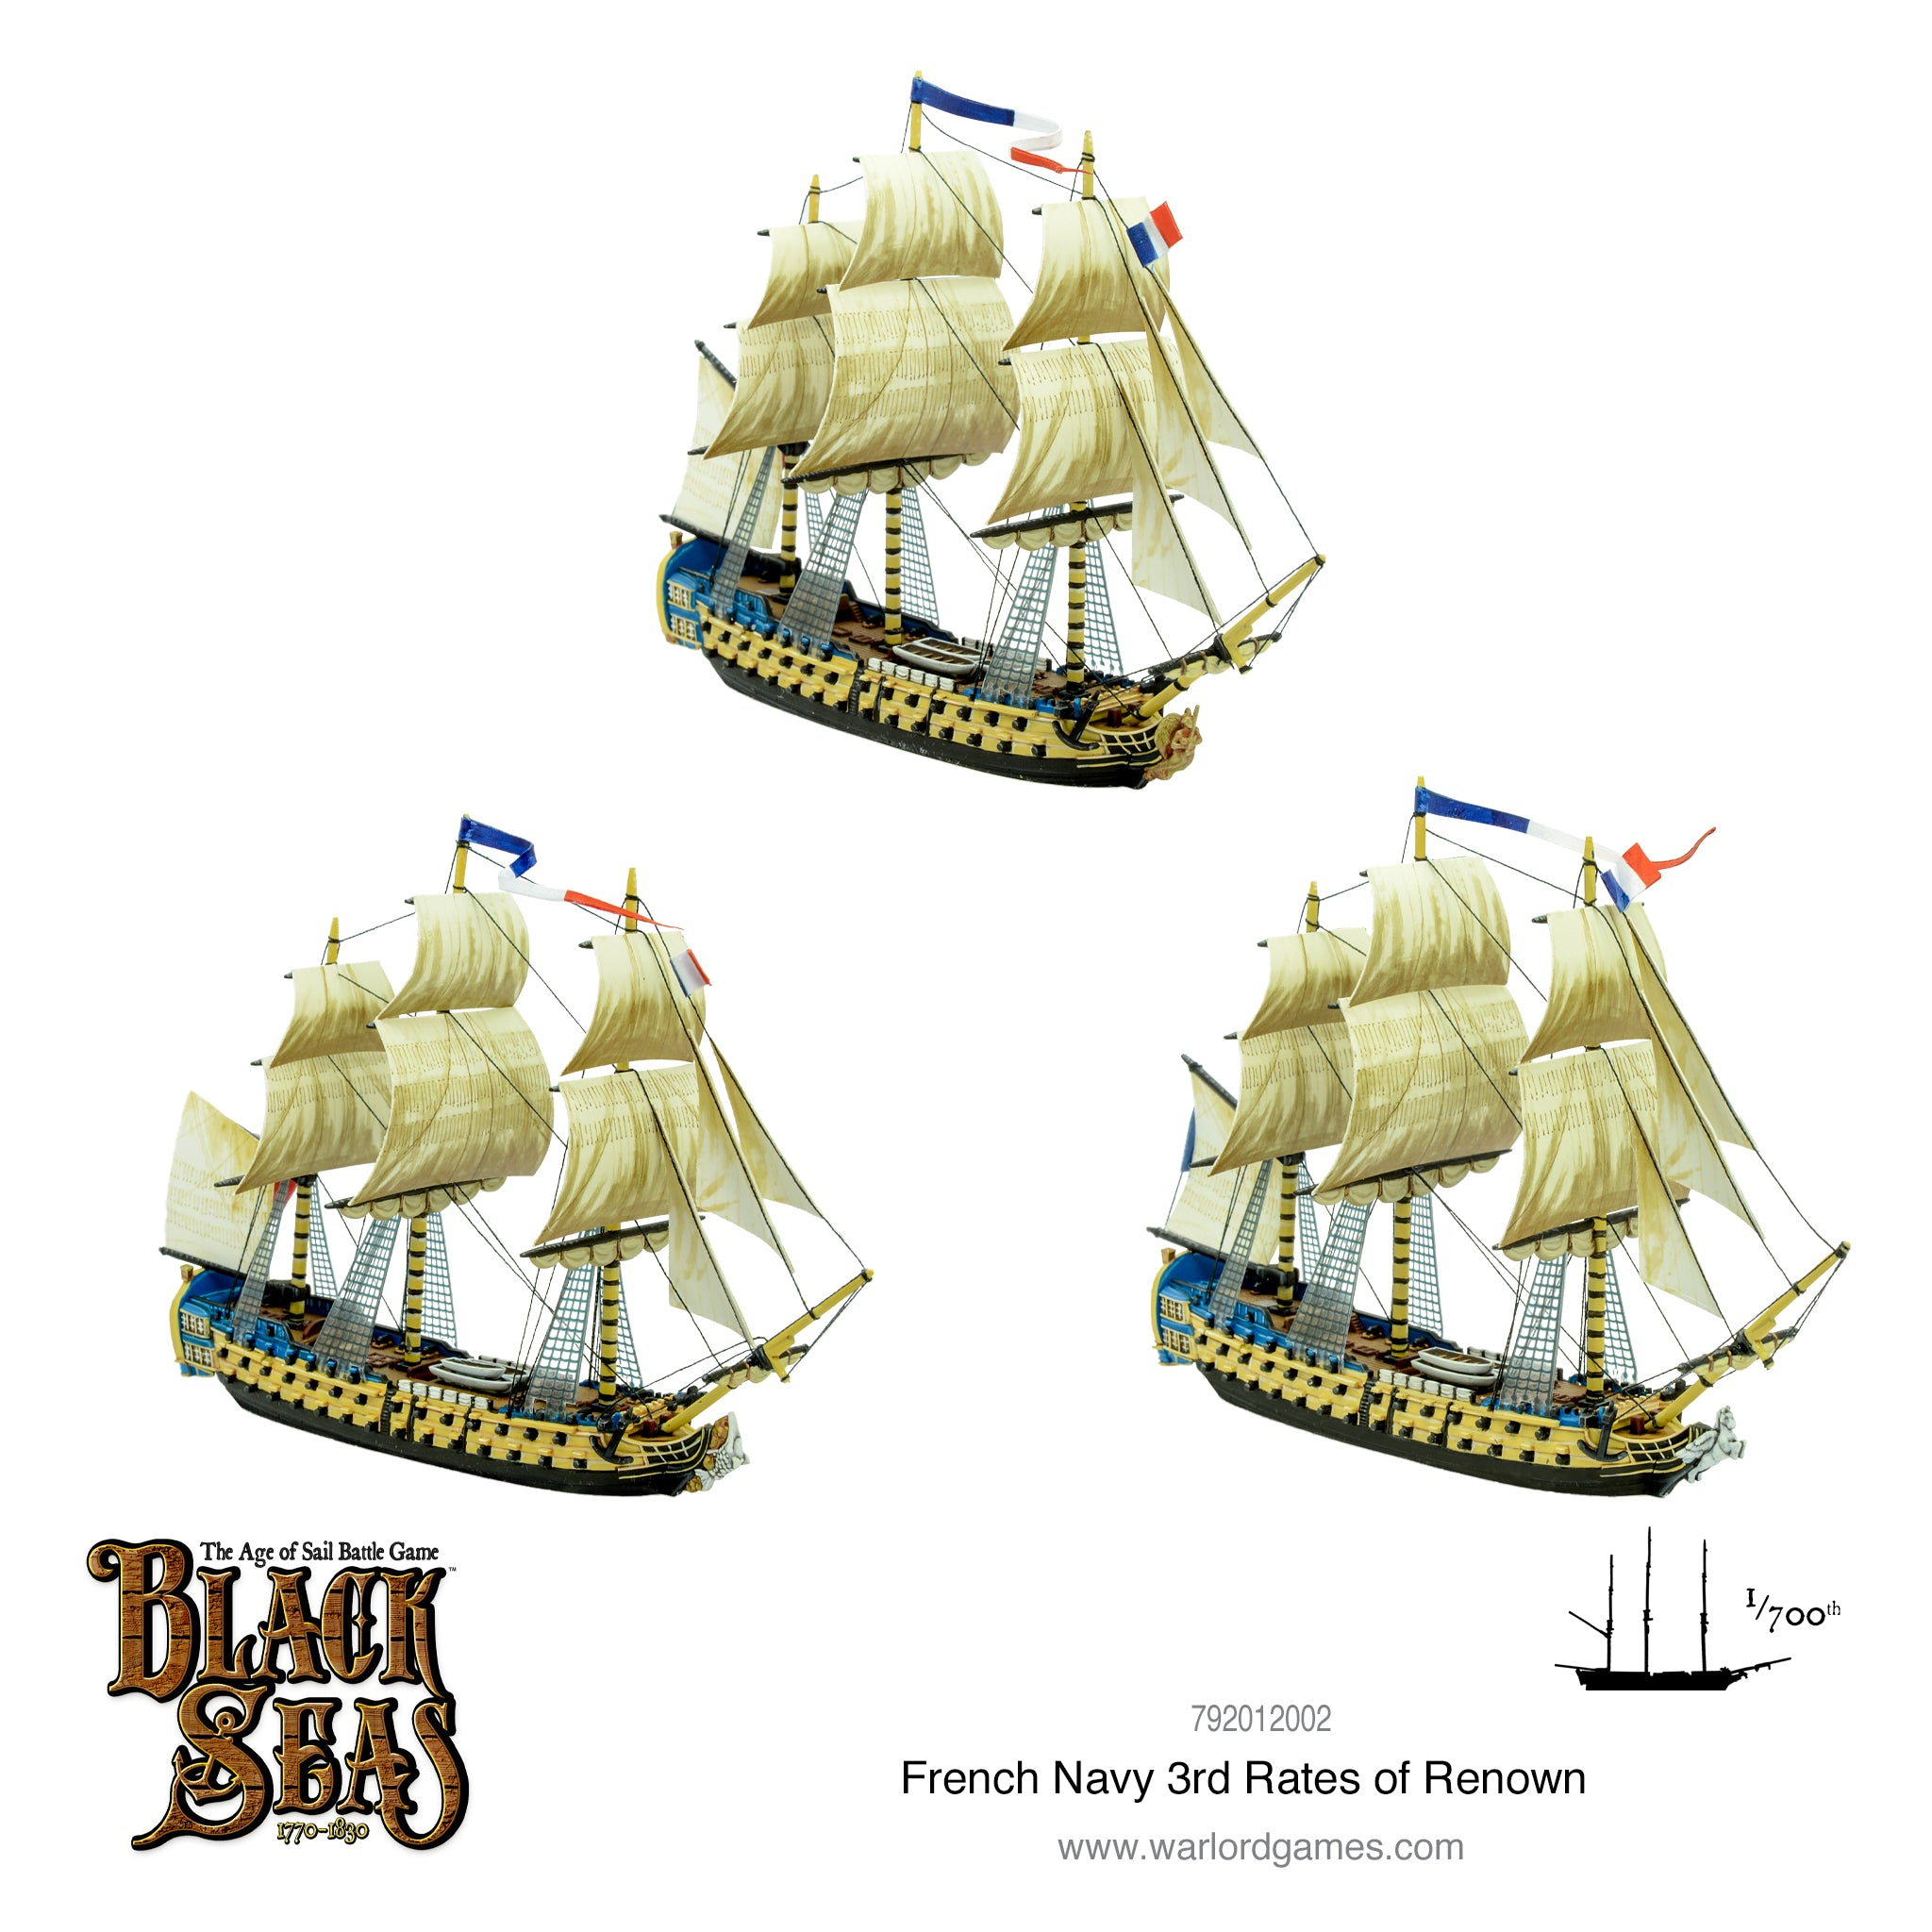 French Navy 3rd Rates of Renown